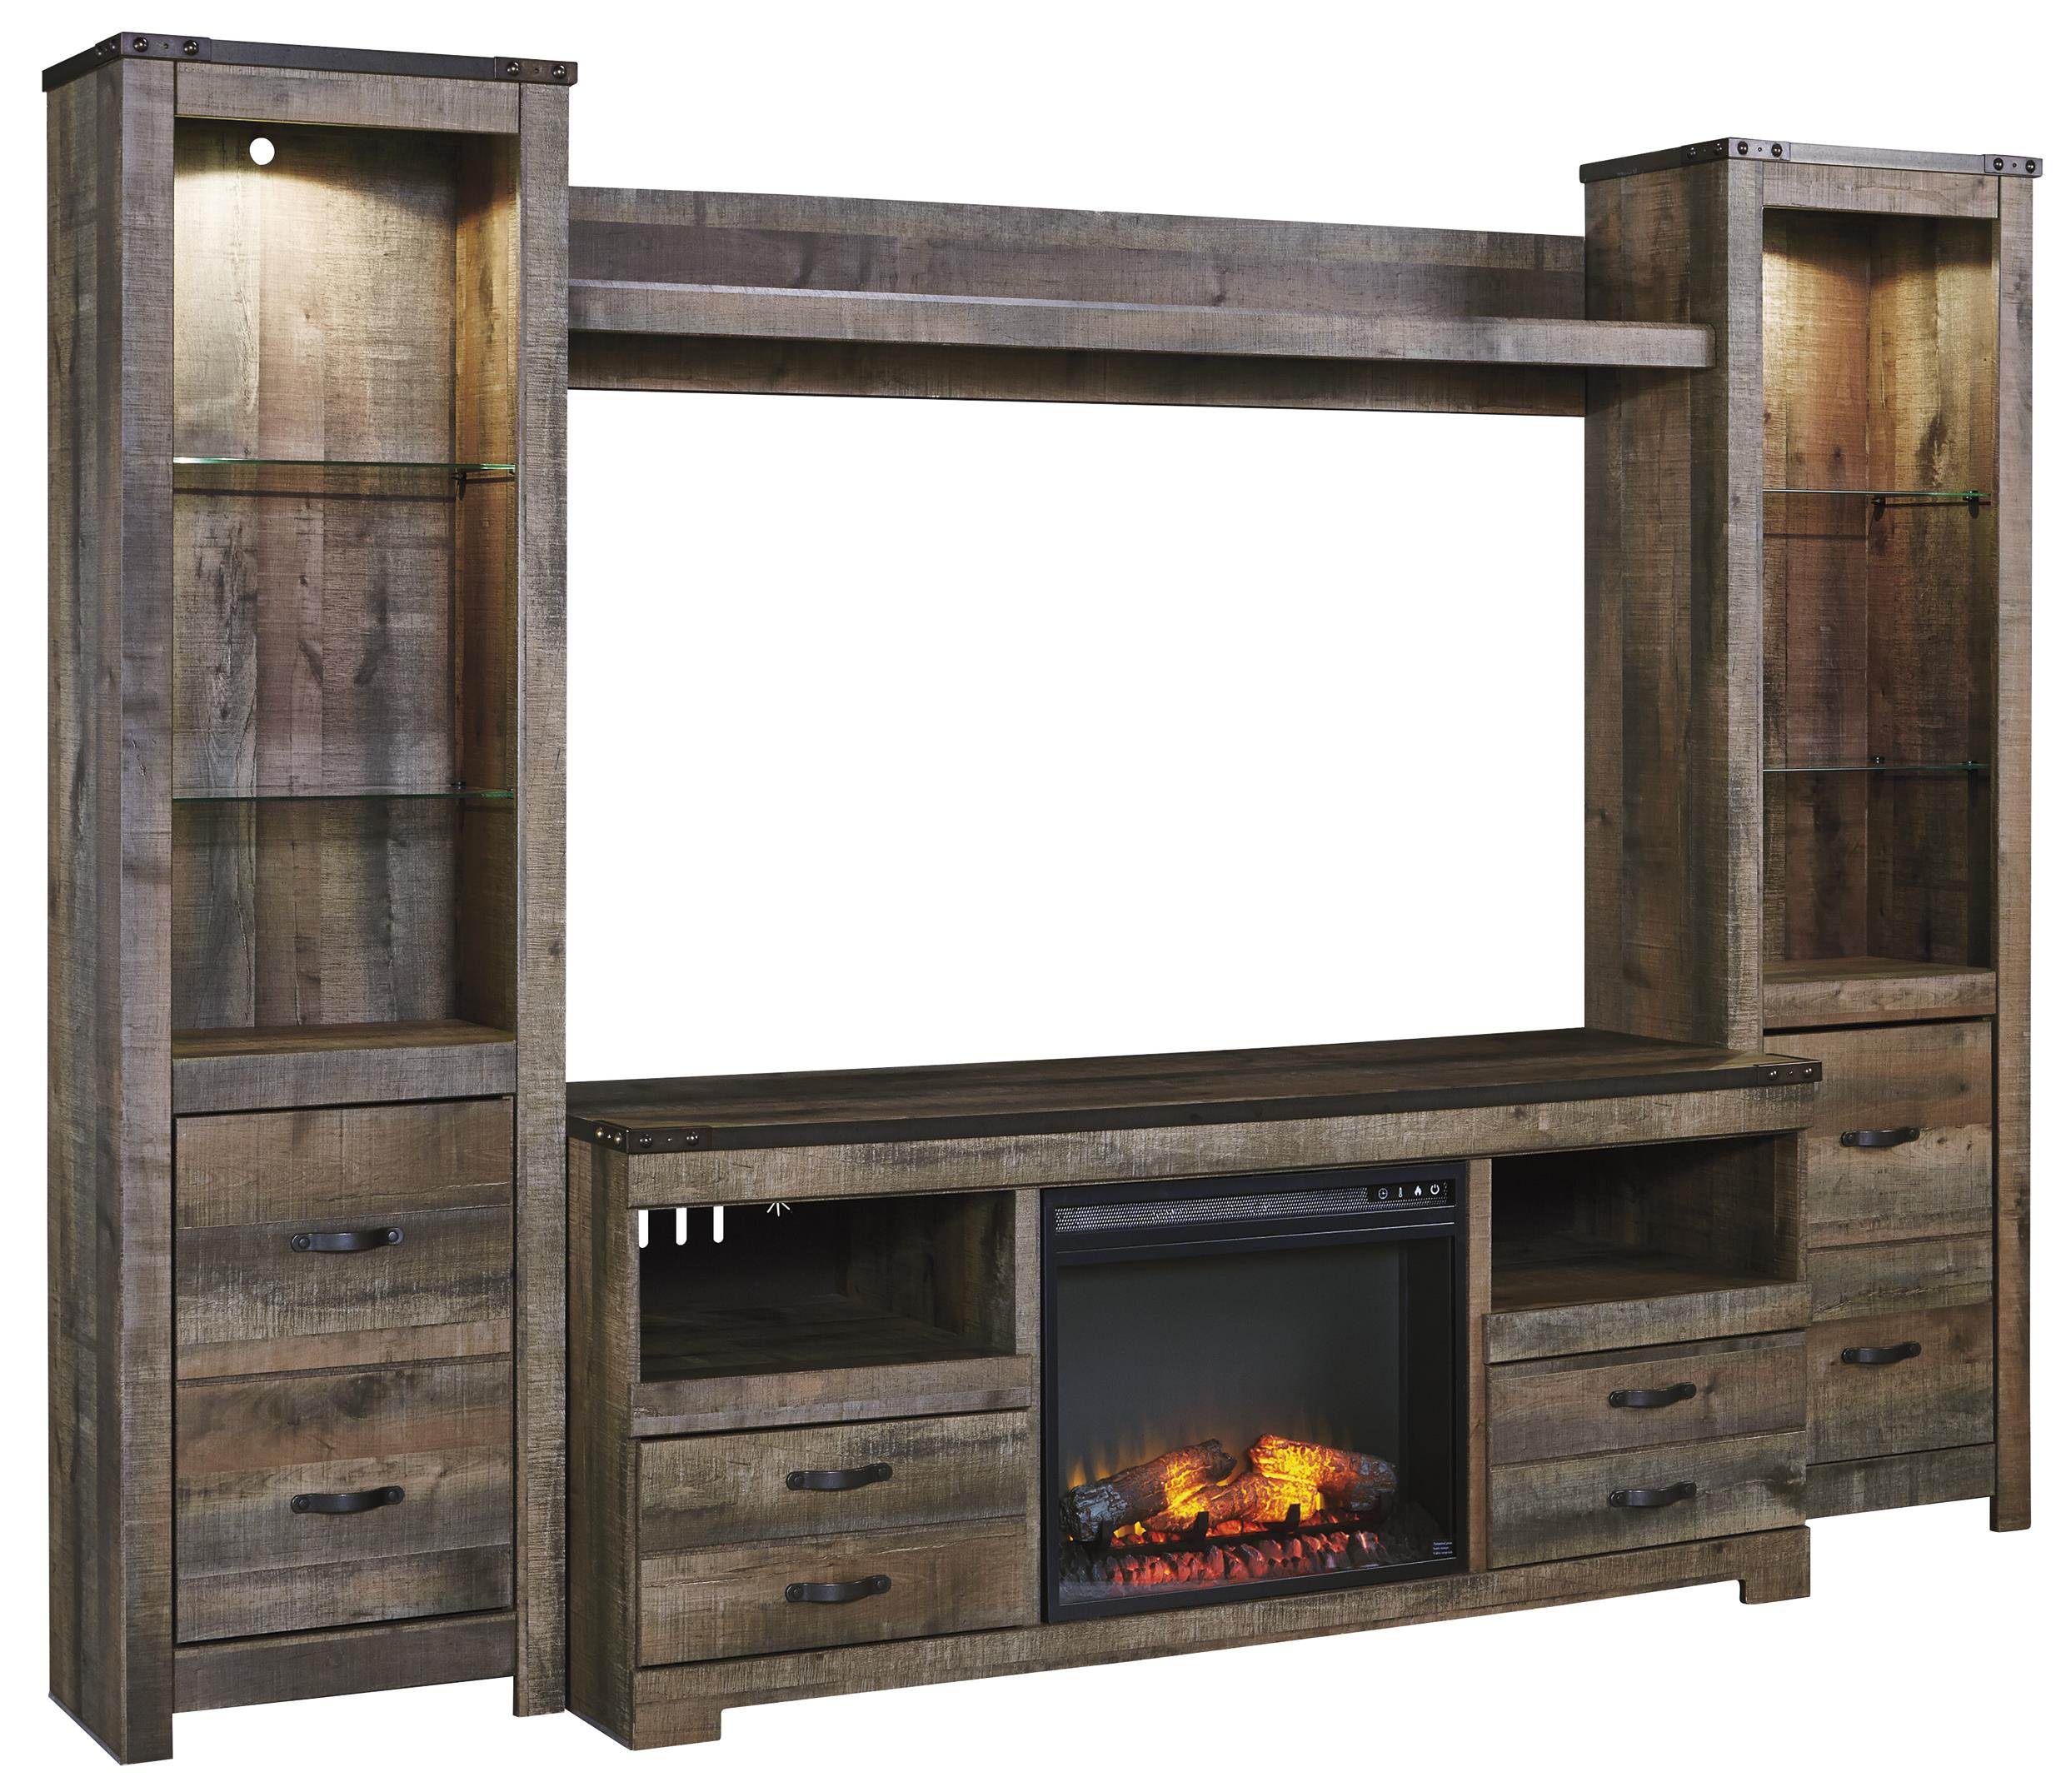 rustic large tv stand w fireplace insert 2 tall piers bridge by signature design by ashley. Black Bedroom Furniture Sets. Home Design Ideas